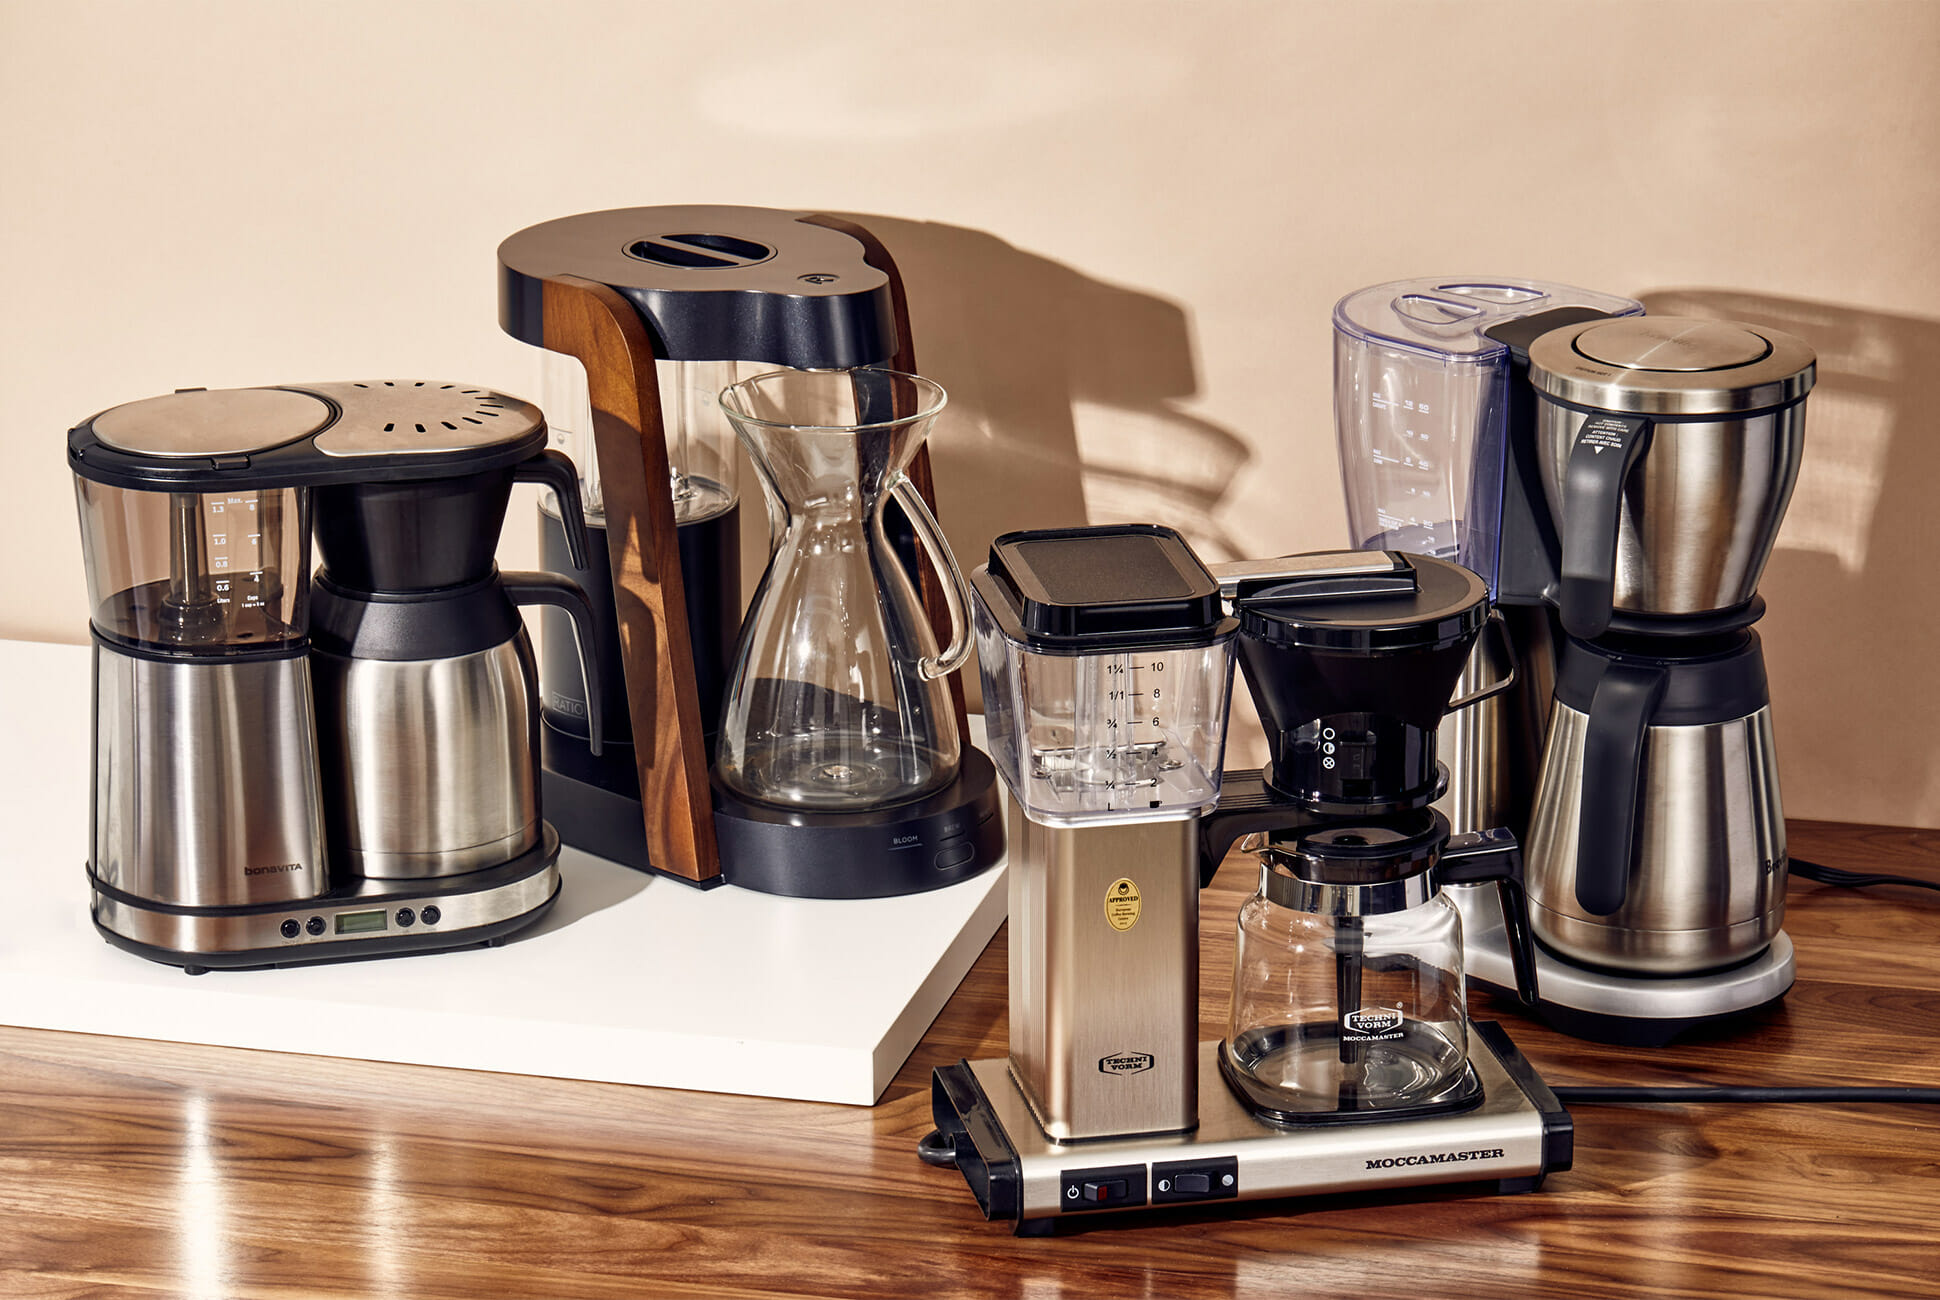 10 Best Coffee Makers 2020 - Do Not Buy Before Reading This!